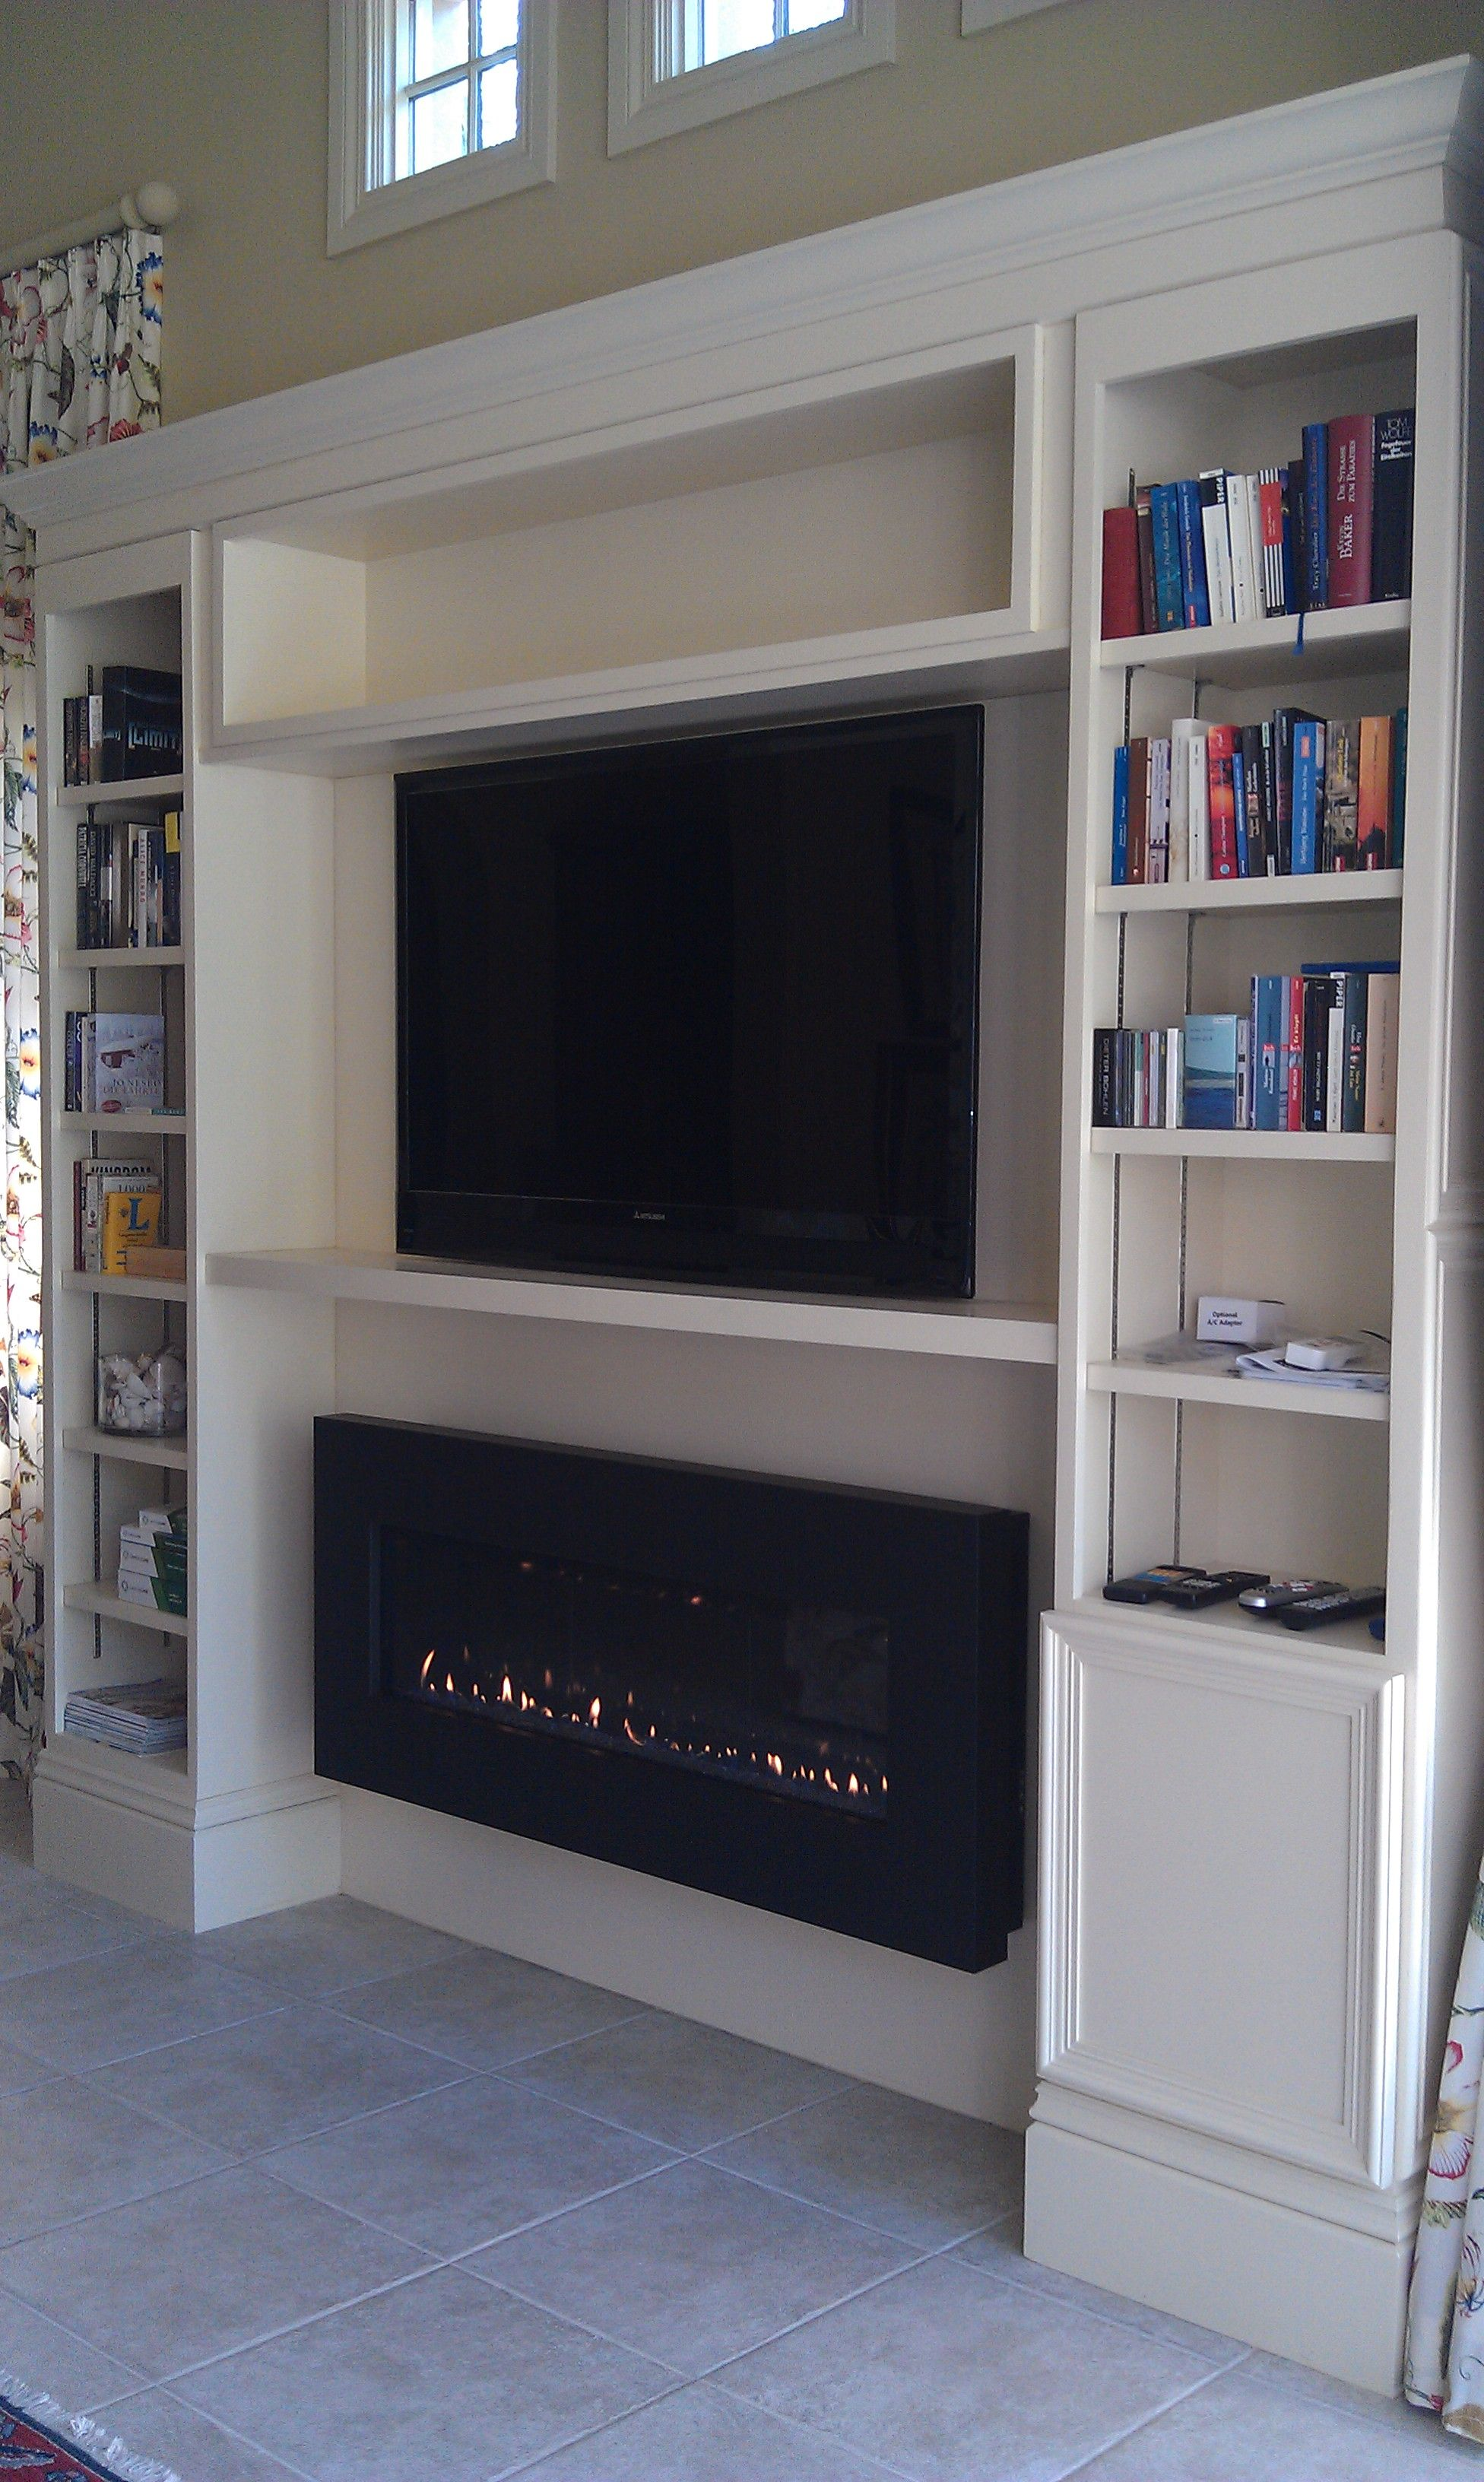 Built In Bookshelf With Entertainment Center And